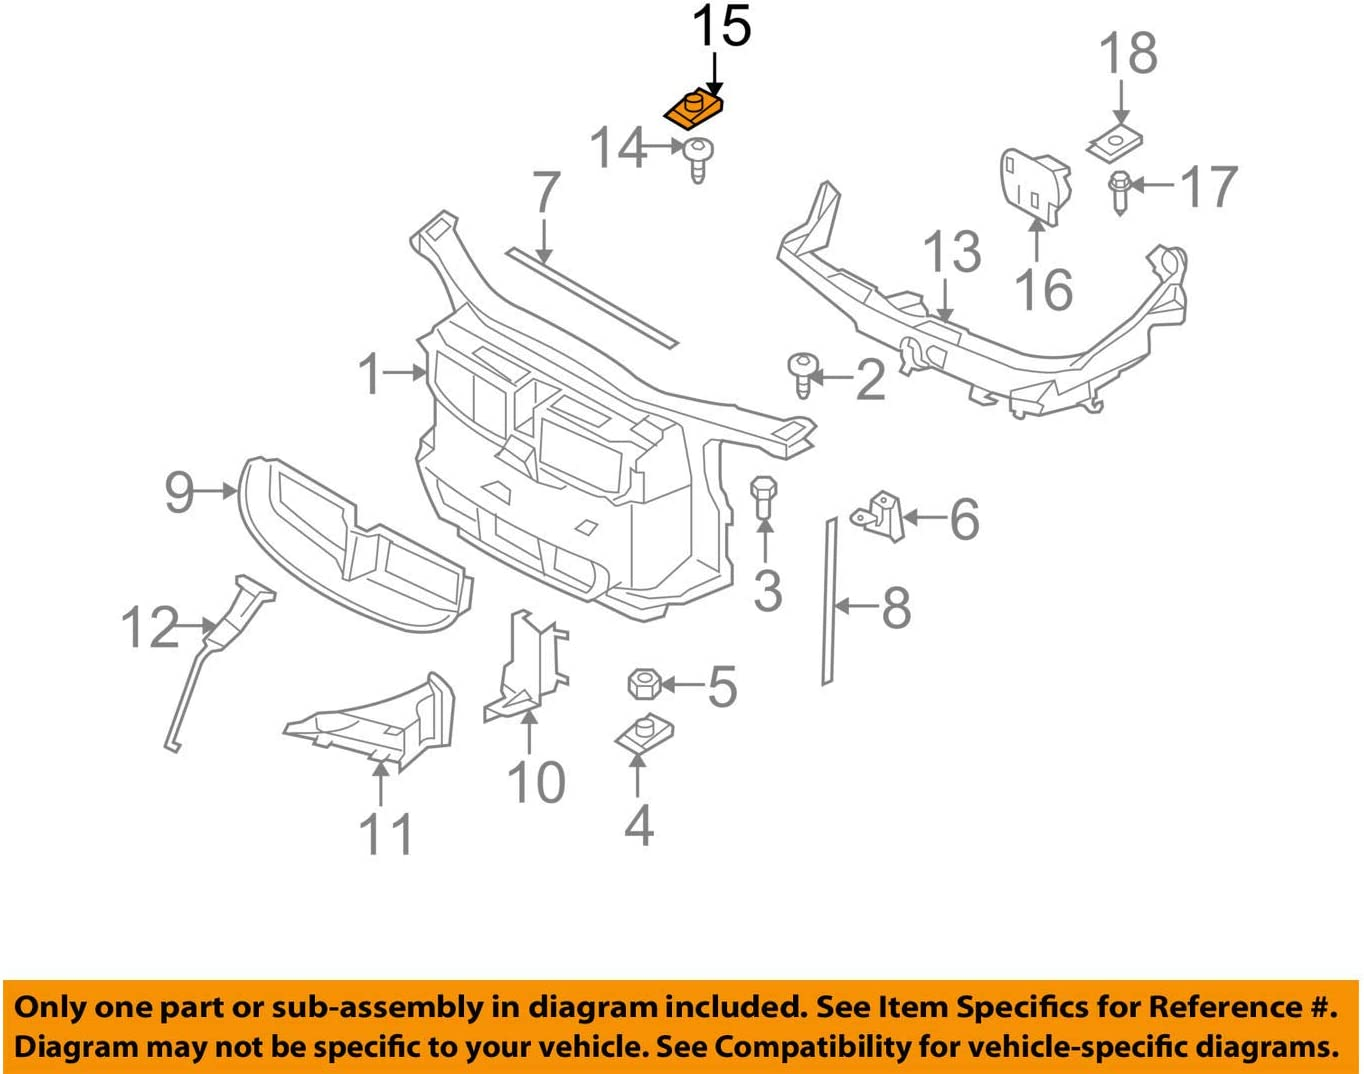 BMW OEM Easy-to-use 04-16 X3 Radiator Core Clip 41357 Reservation Bar Support-Lamp Mount